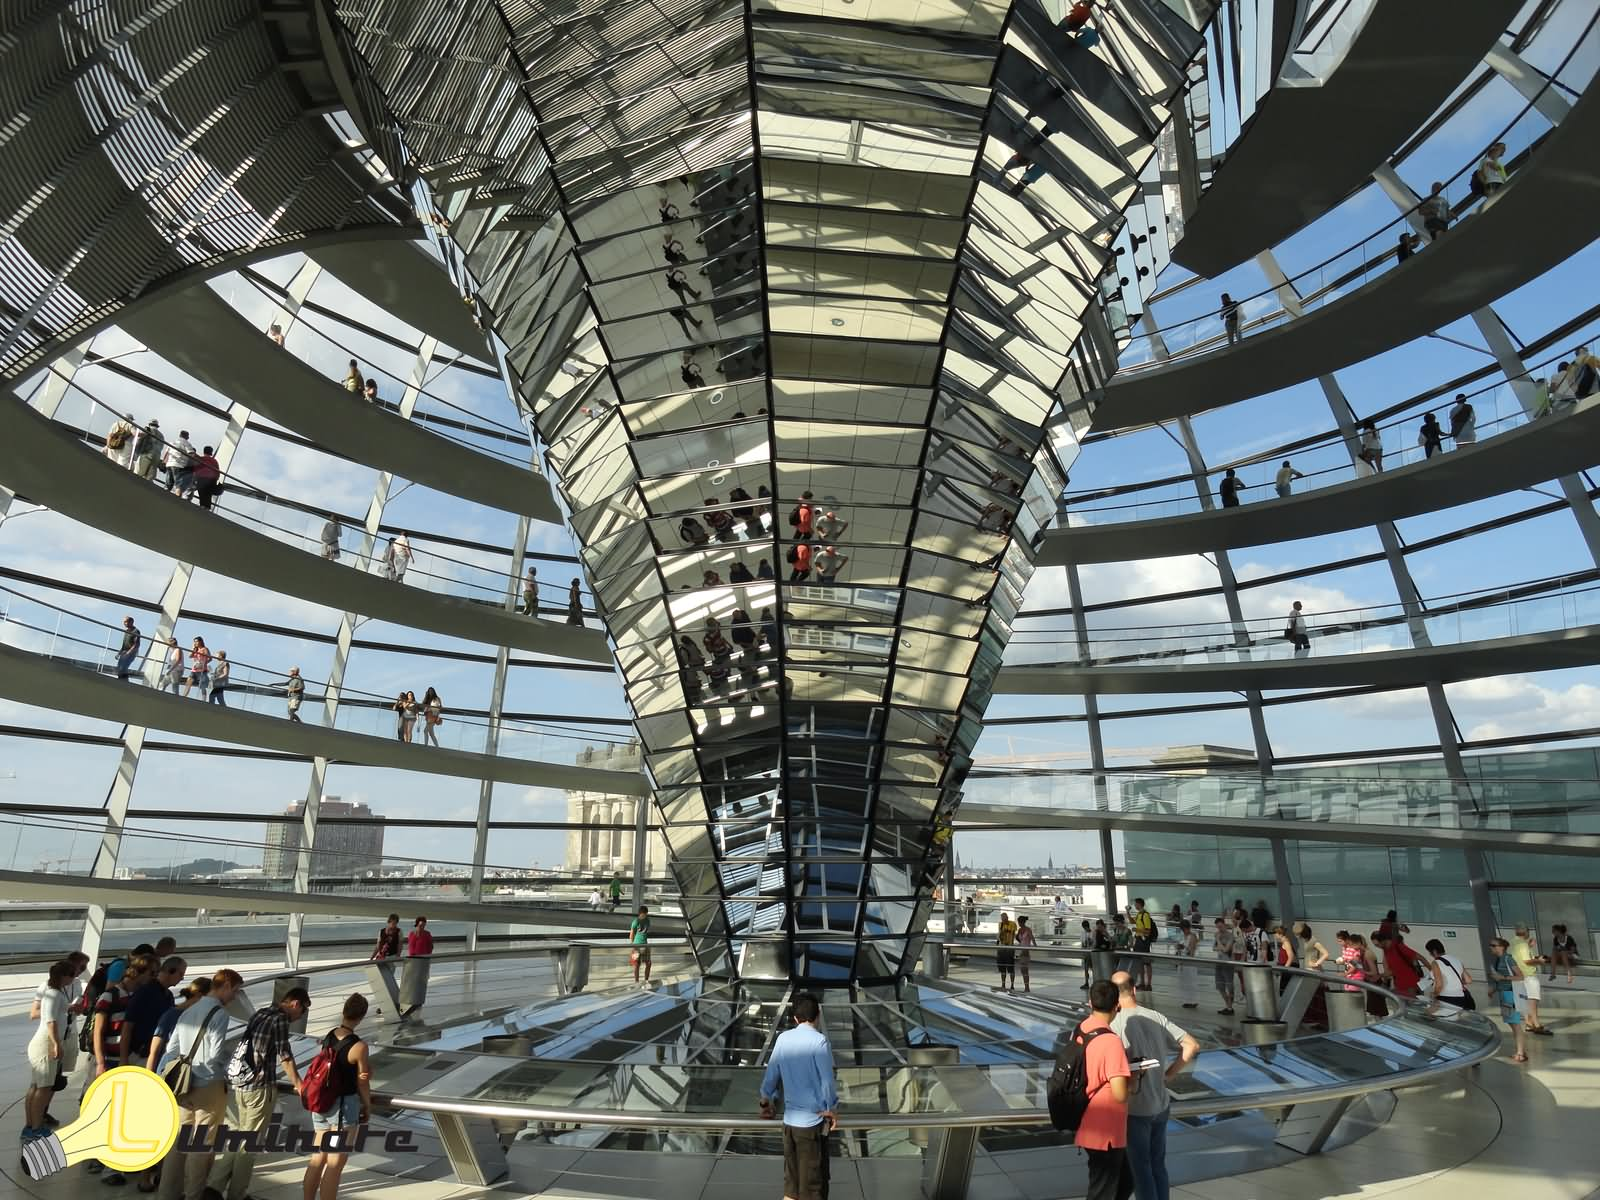 Interior Berlin 20 Incredible Interior Pictures And Photos Of The